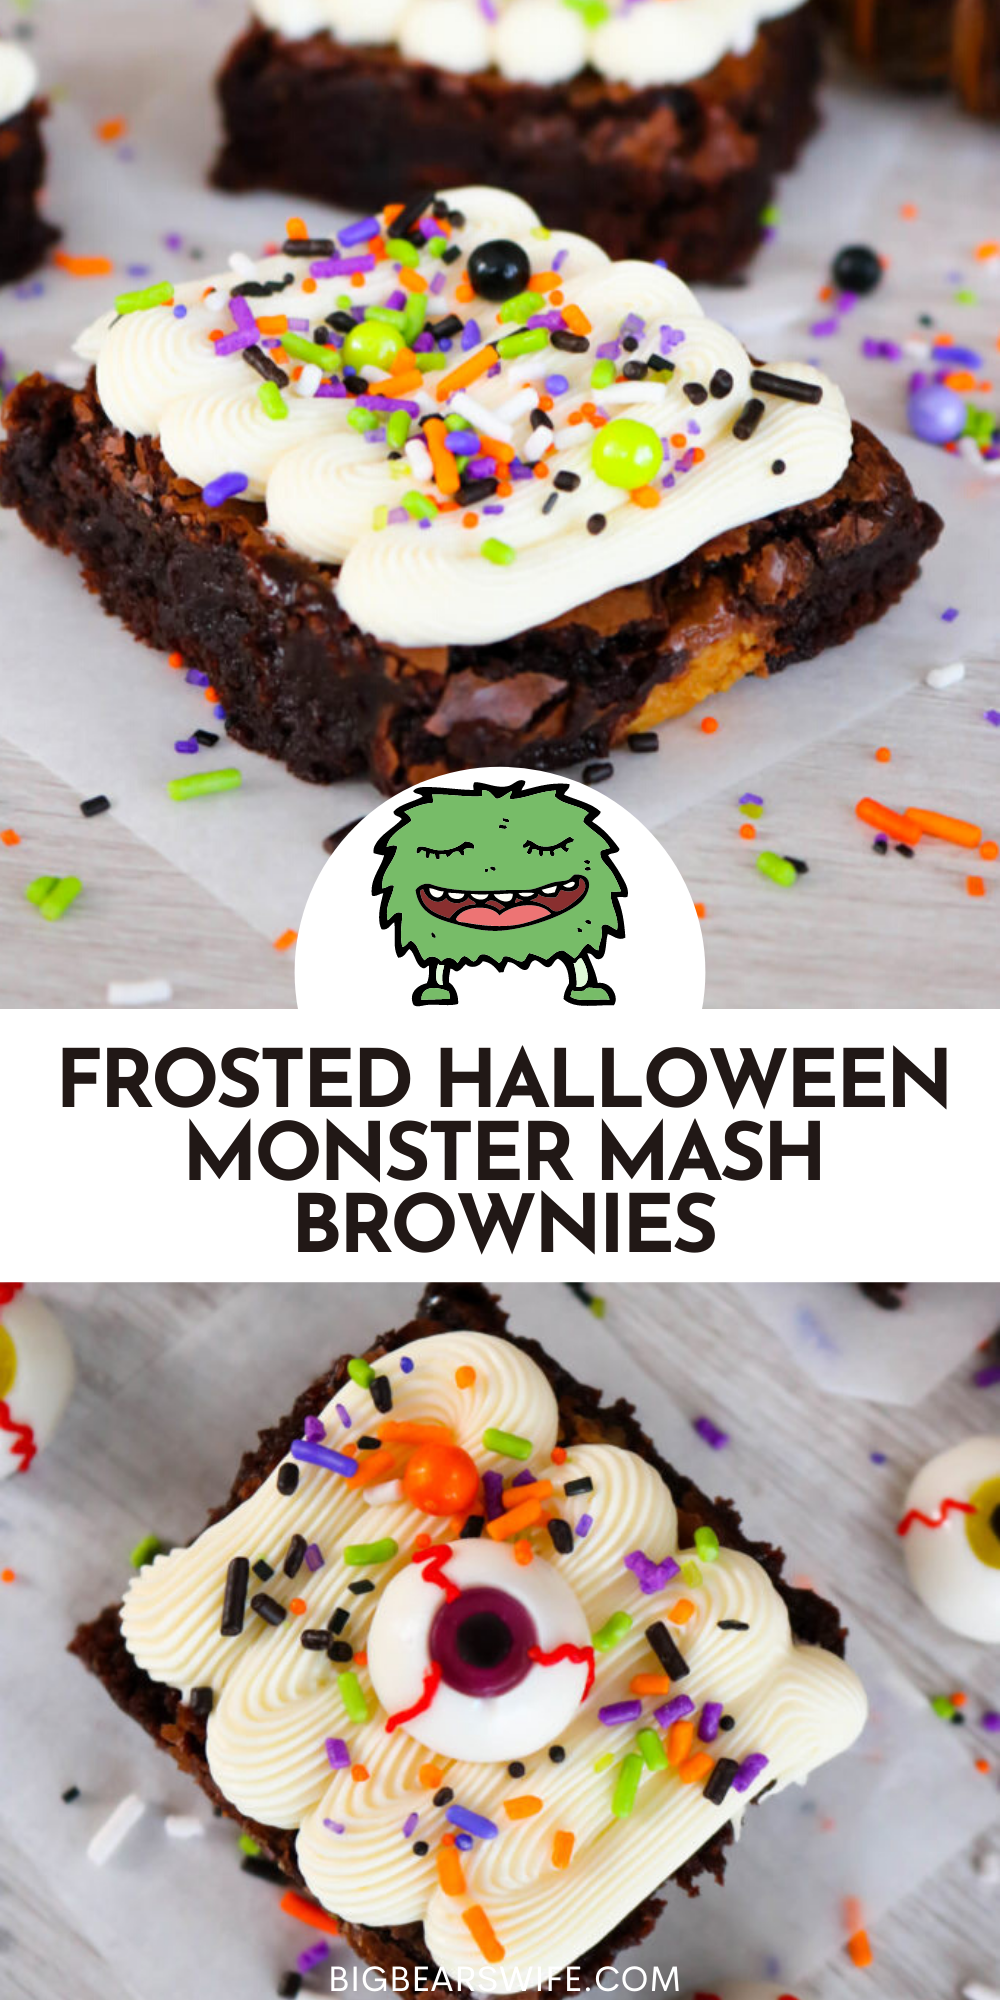 Peanut Butter stuffed brownies are celebrating Halloween with Monster Mash makeover! These Frosted Halloween Monster Mash Brownies have the perfect Halloween sprinkles on top of the easy homemade frosting and creepy gummy eyeballs.  via @bigbearswife